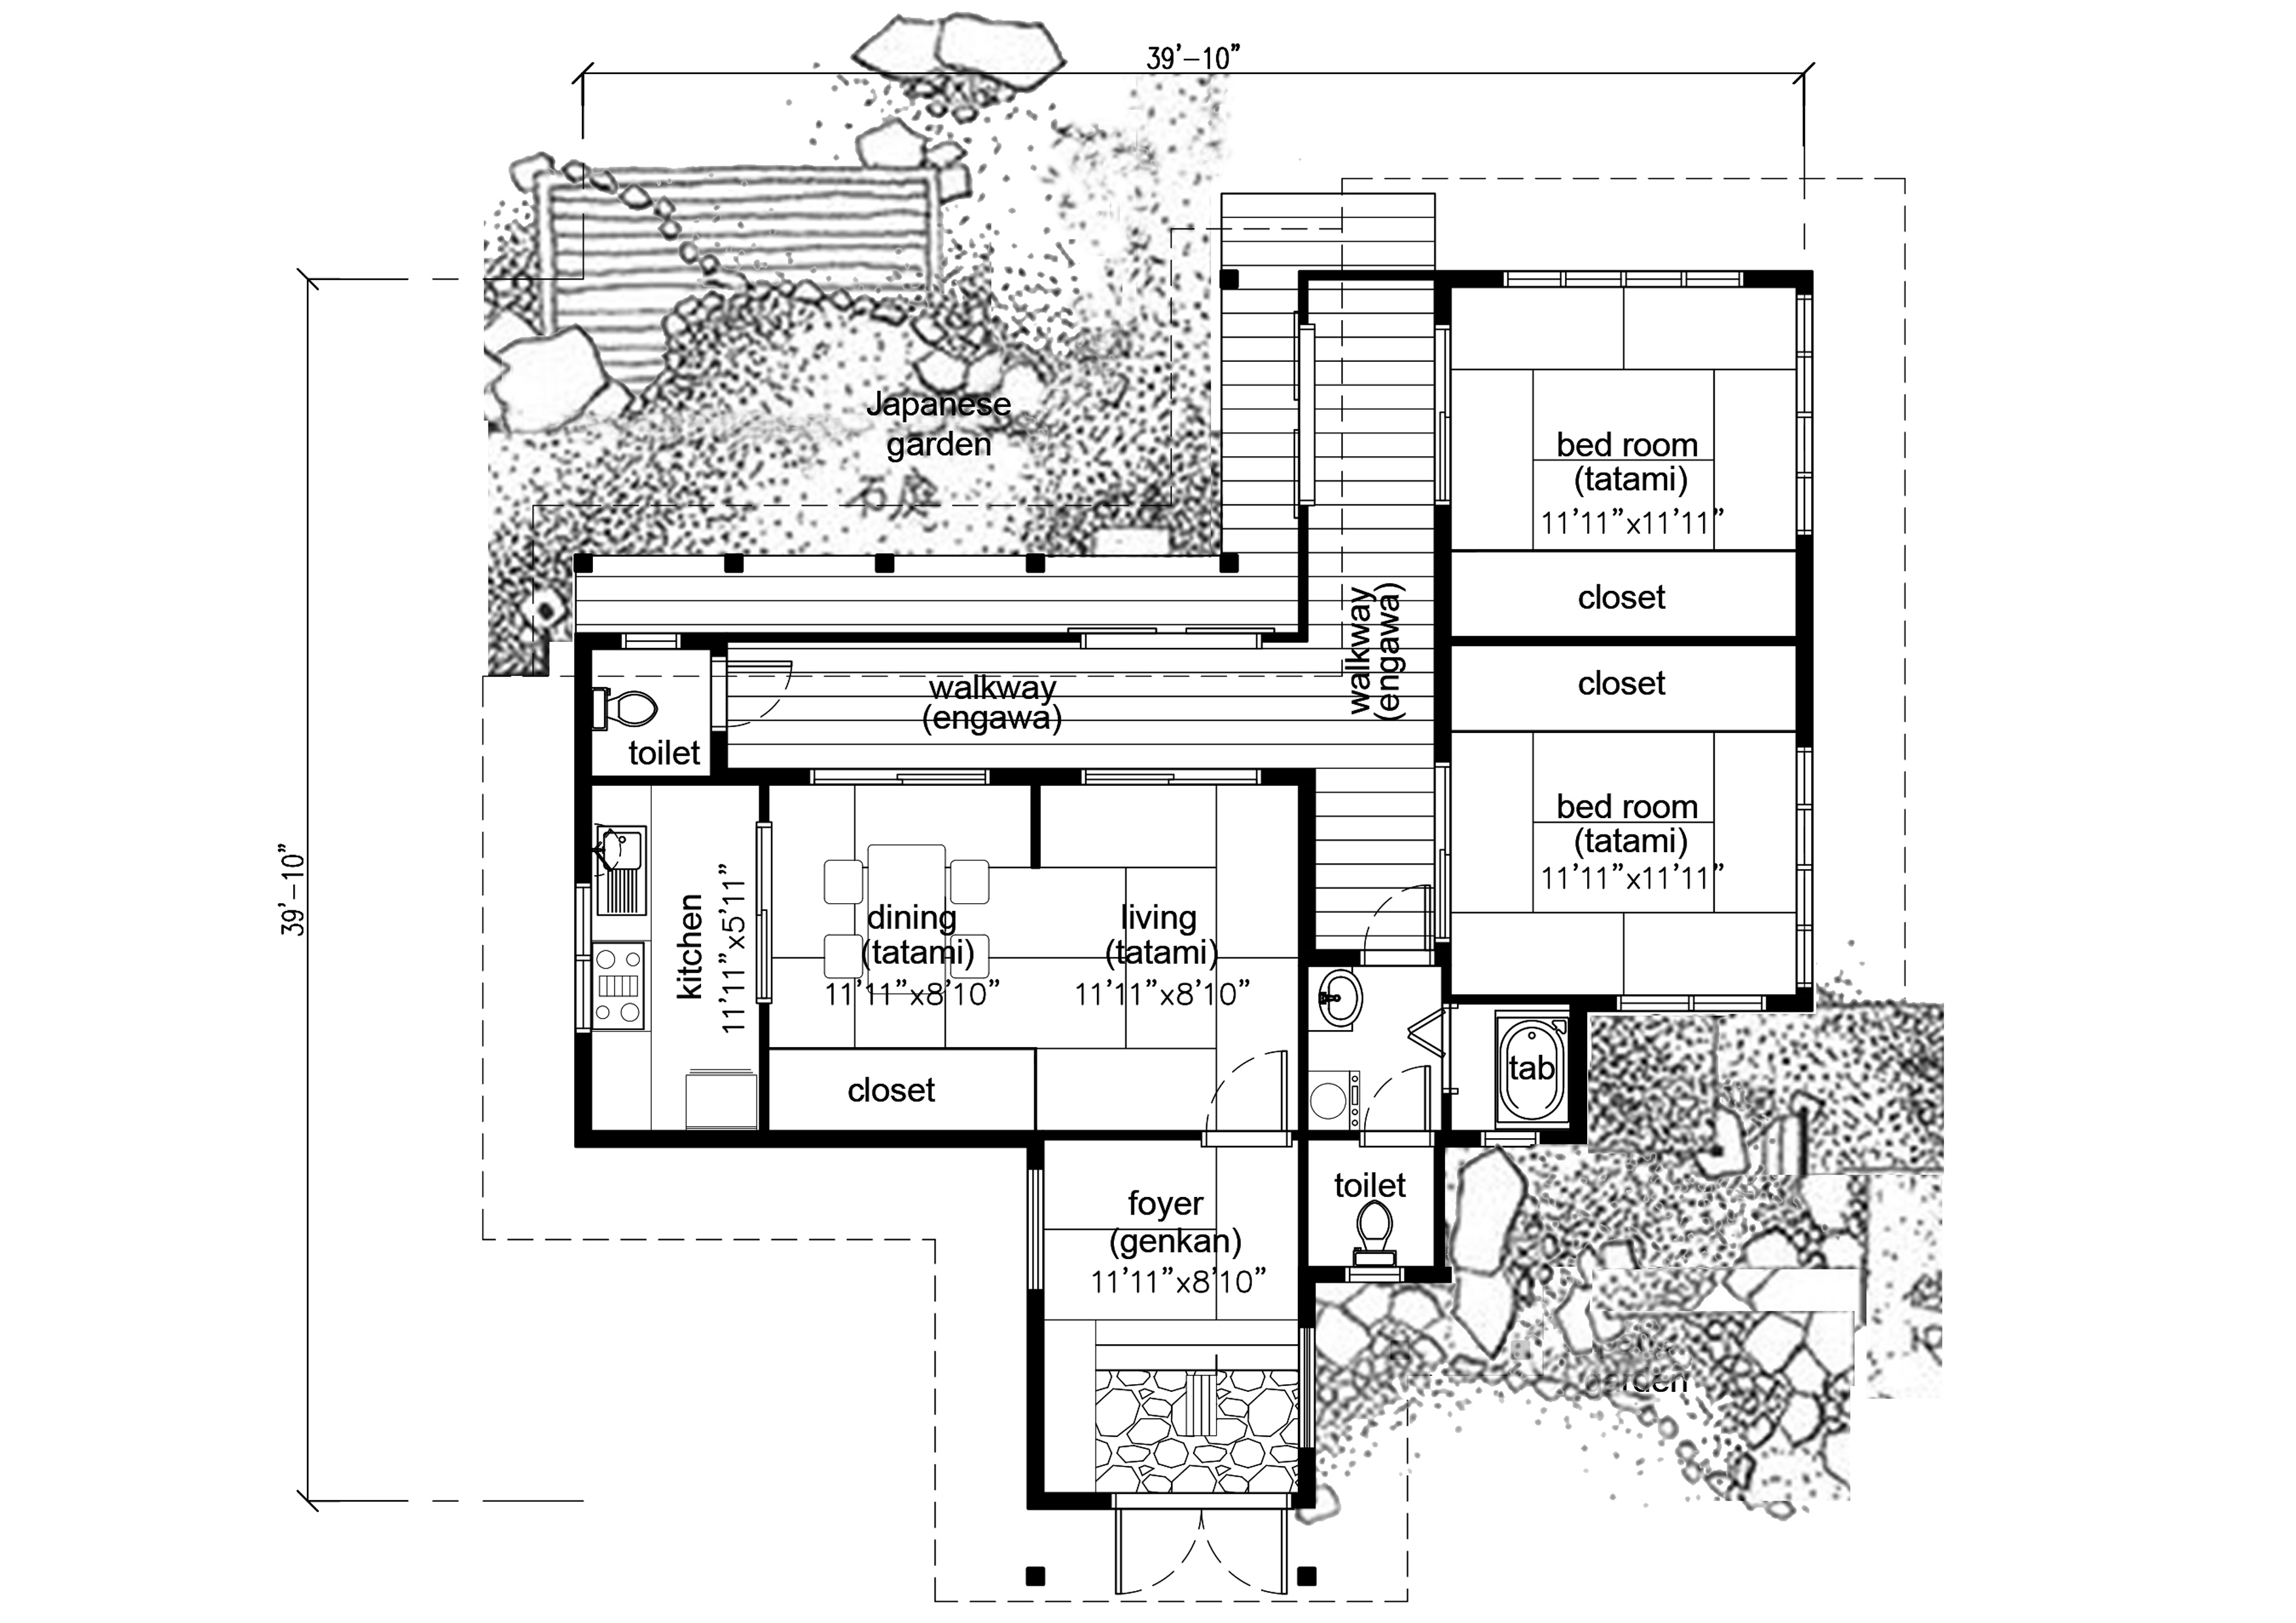 Other Images Like This! this is the related images of Japanese House Plan